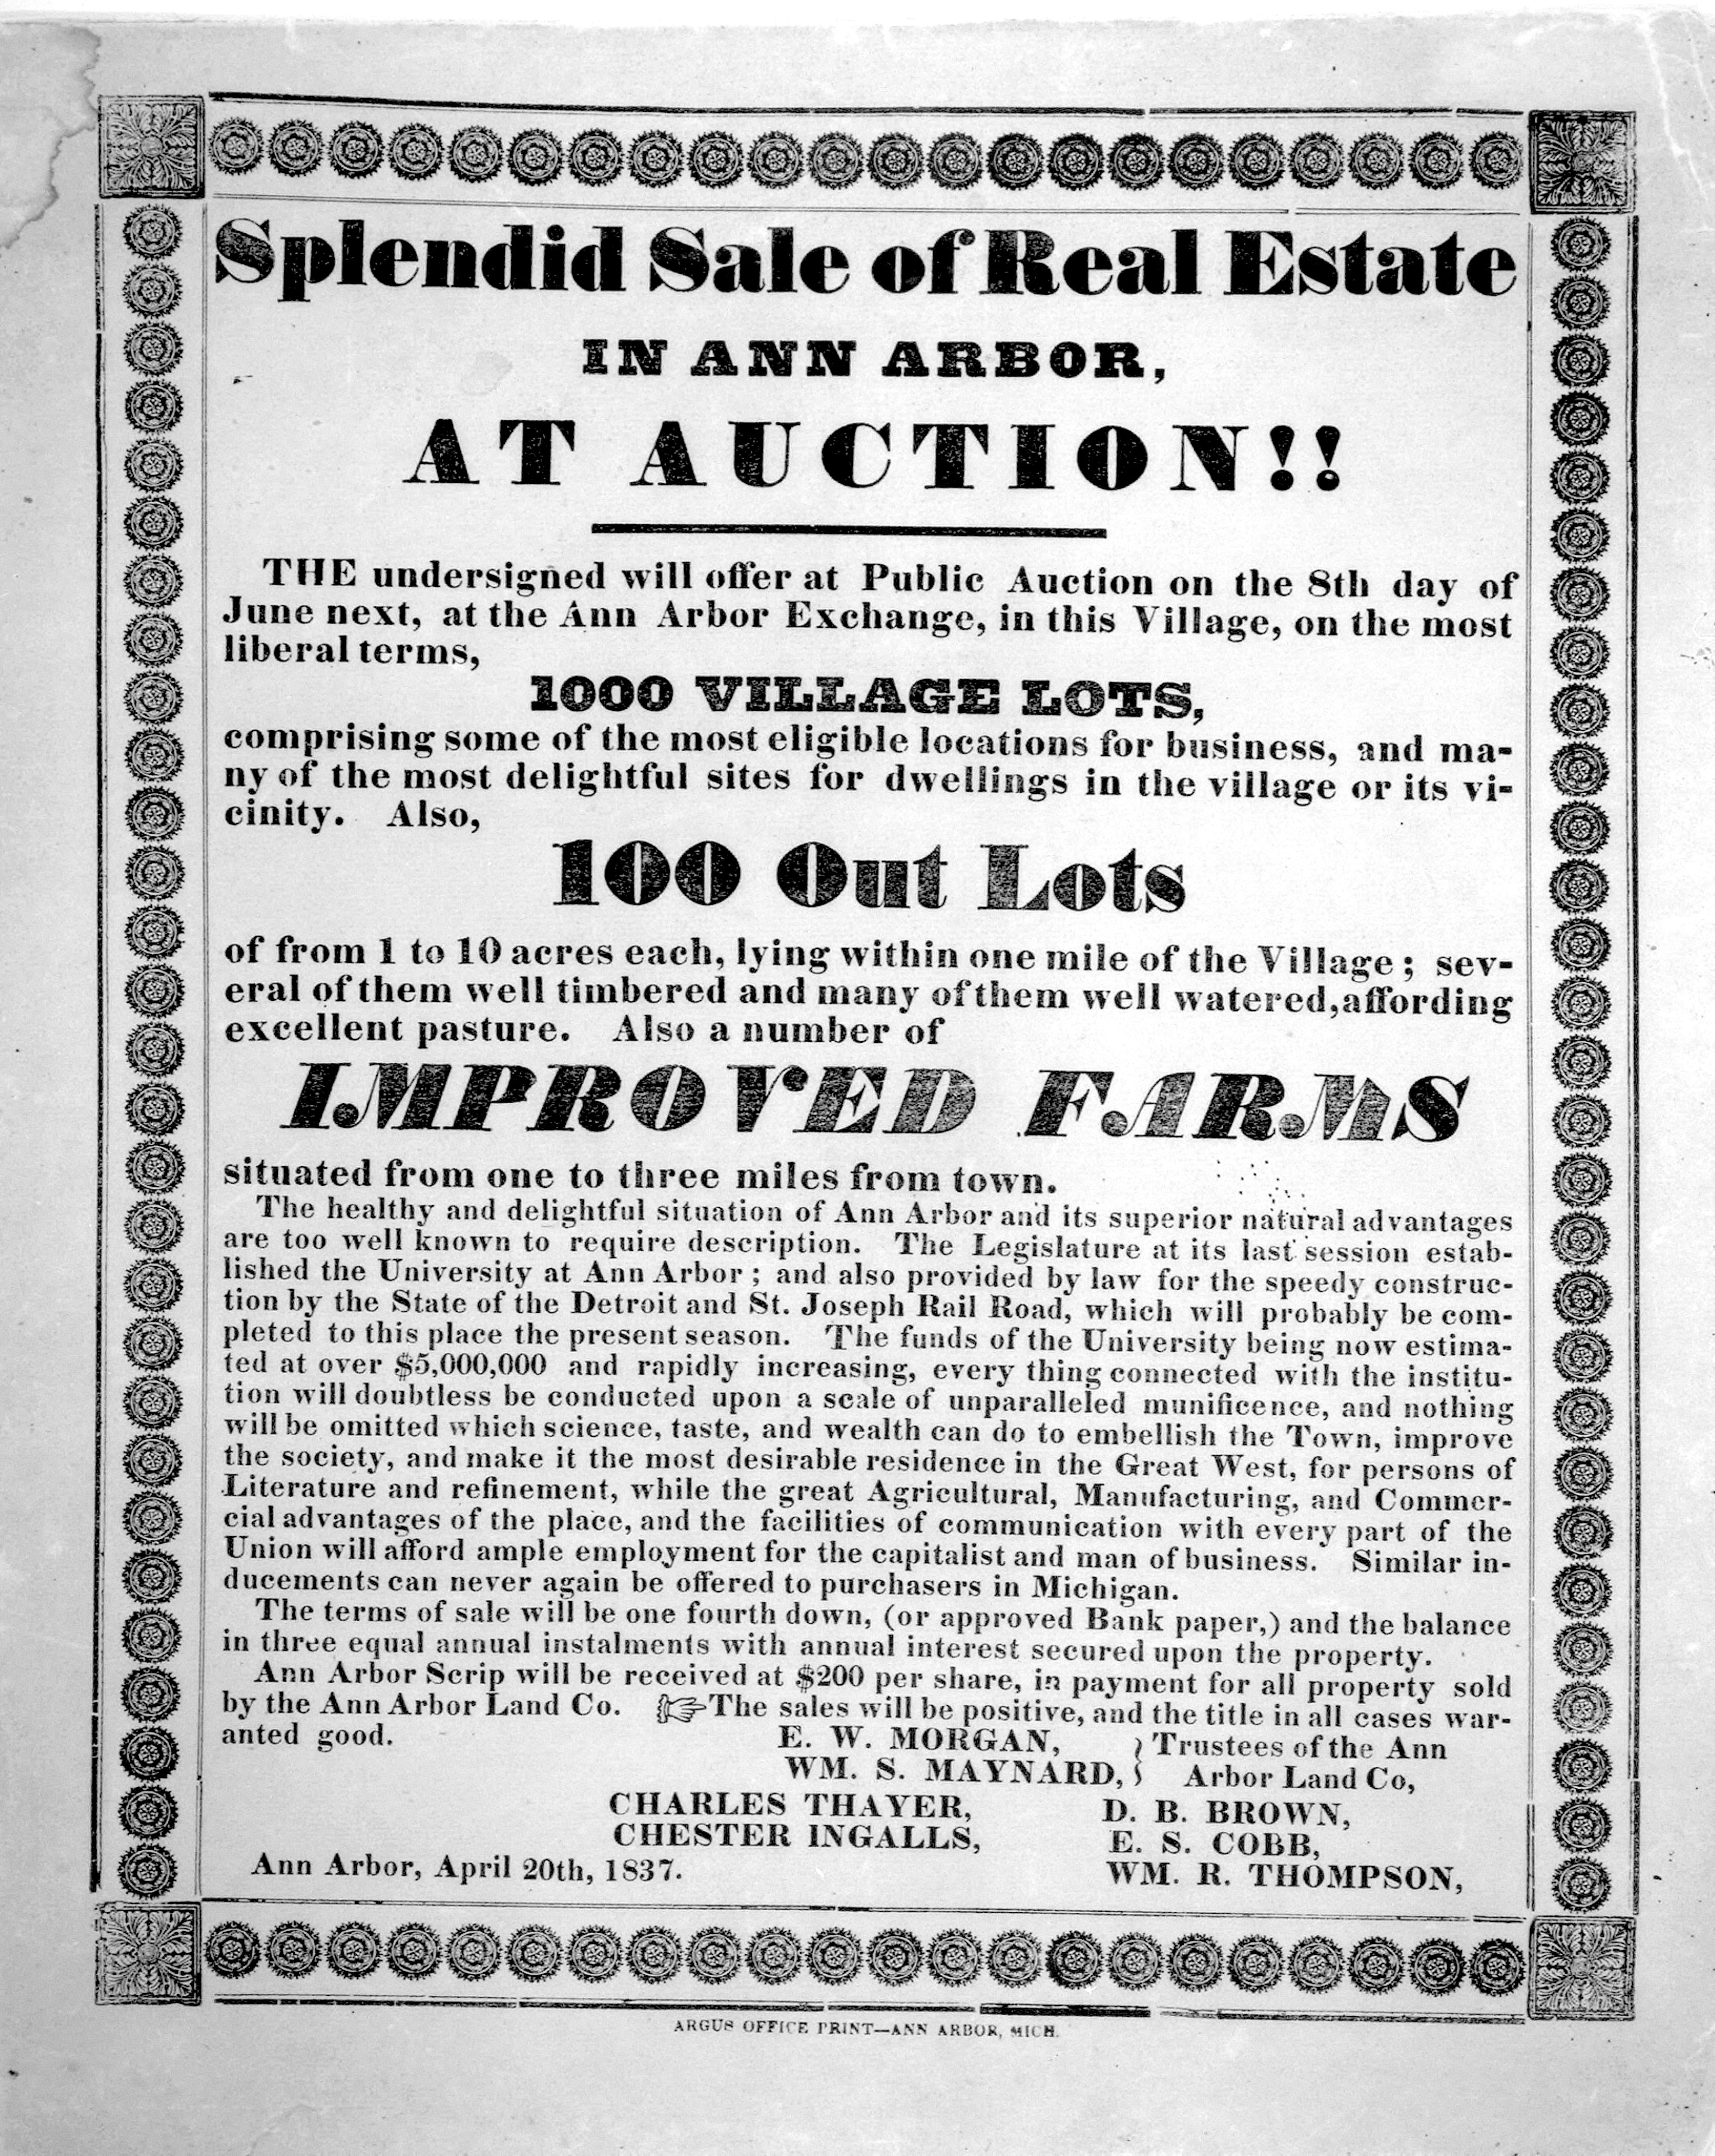 Splendid sale of real estate in Ann Arbor, at auction!! image